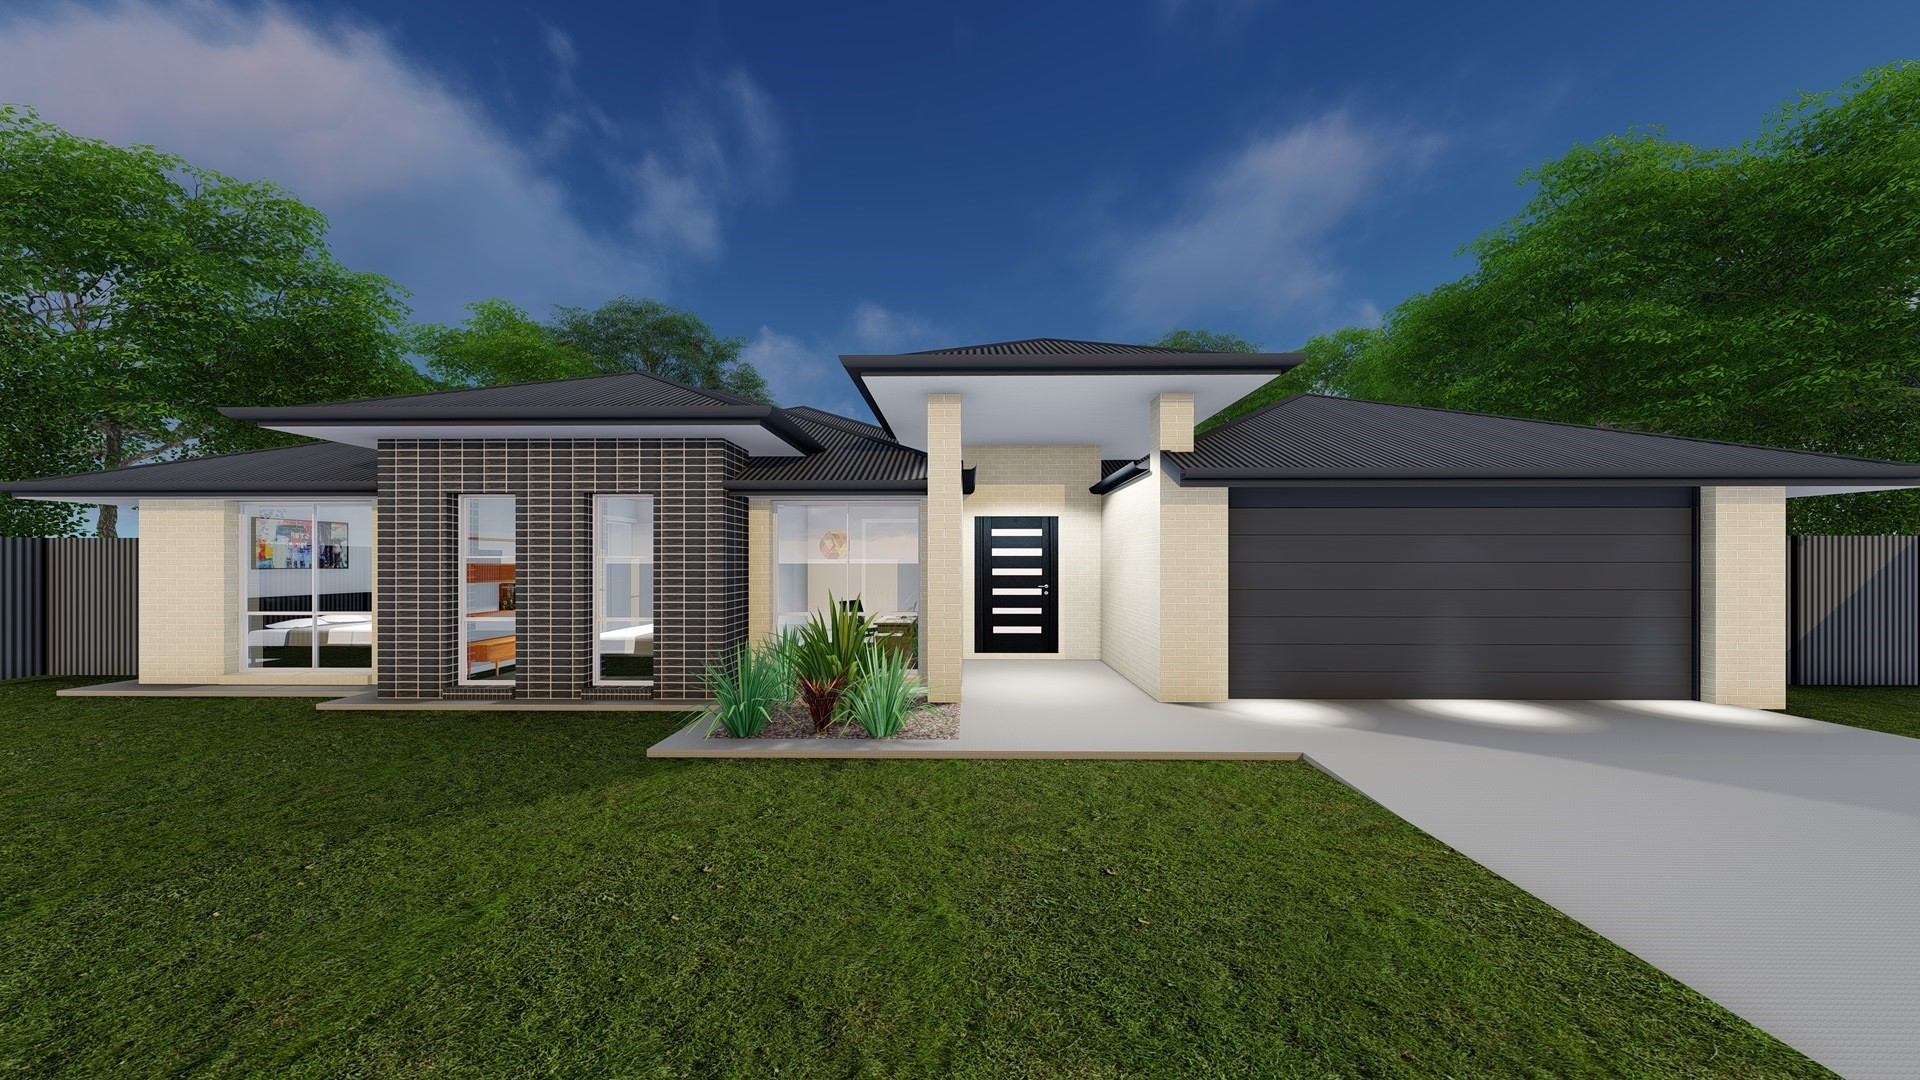 Lot 34 Black Beauty Court, Kensington